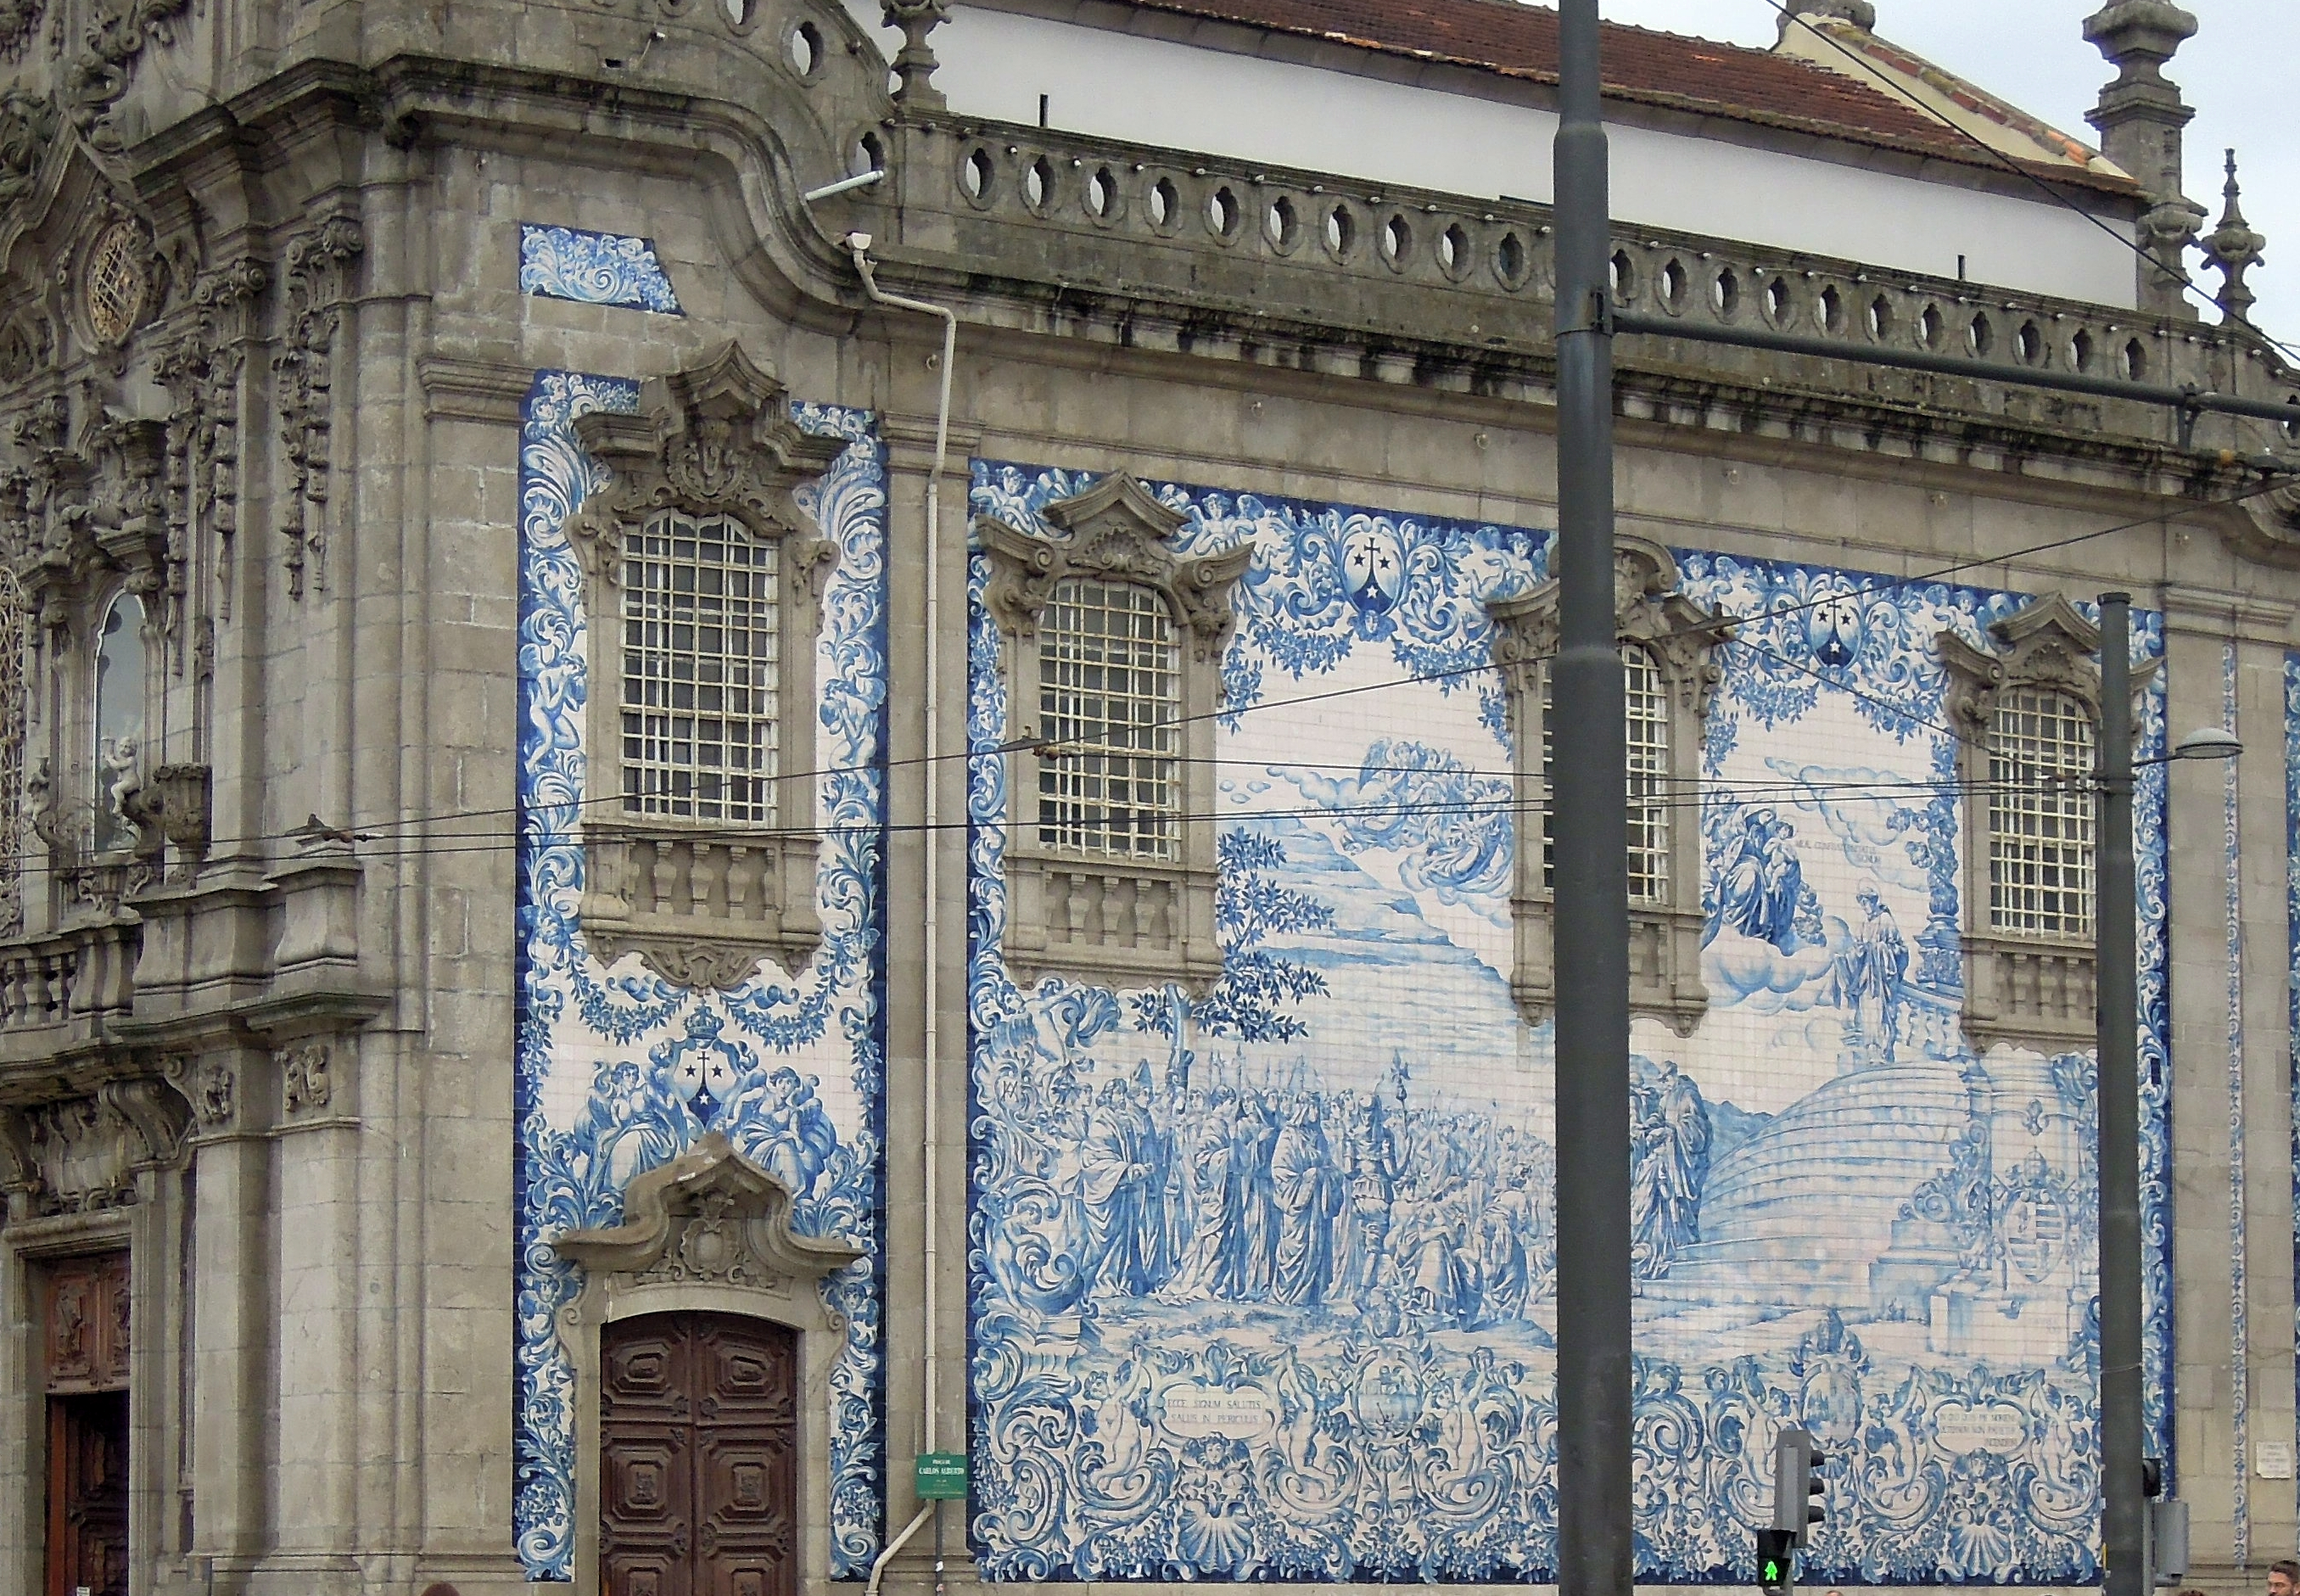 Azulejos exterior simple insprate con fotos de azulejos for Azulejos exterior